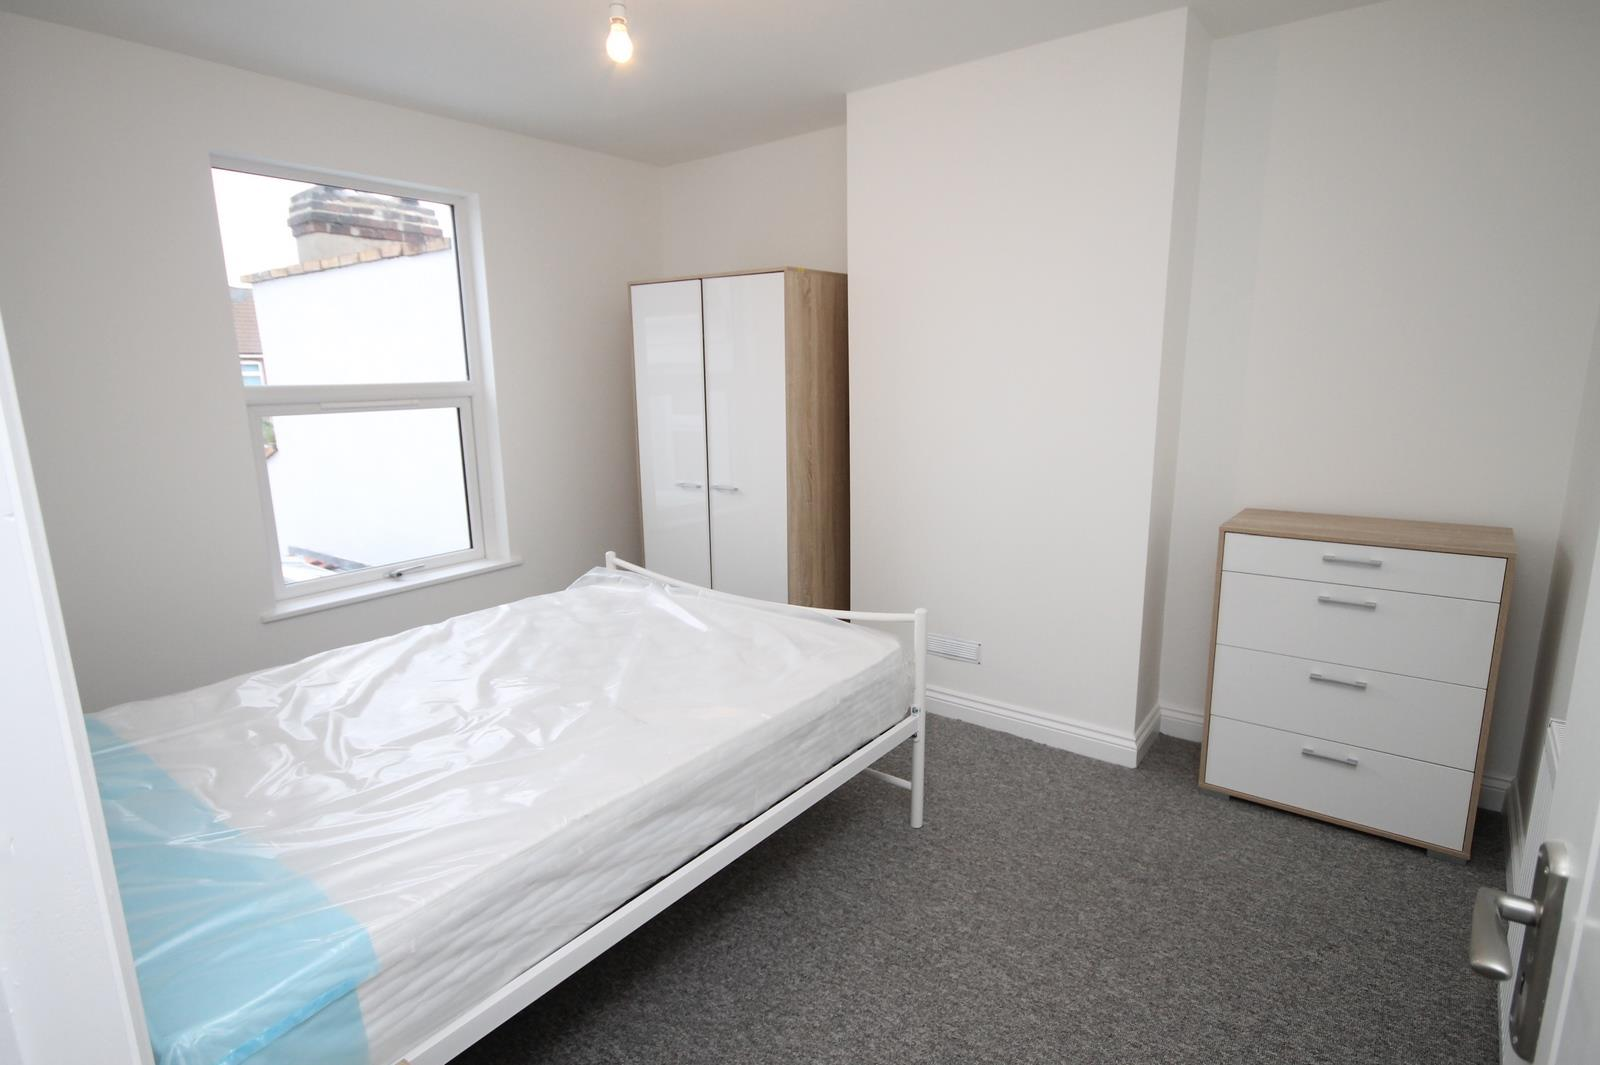 1 bed house share to rent in Richmond Villas, Bristol - Property Image 1